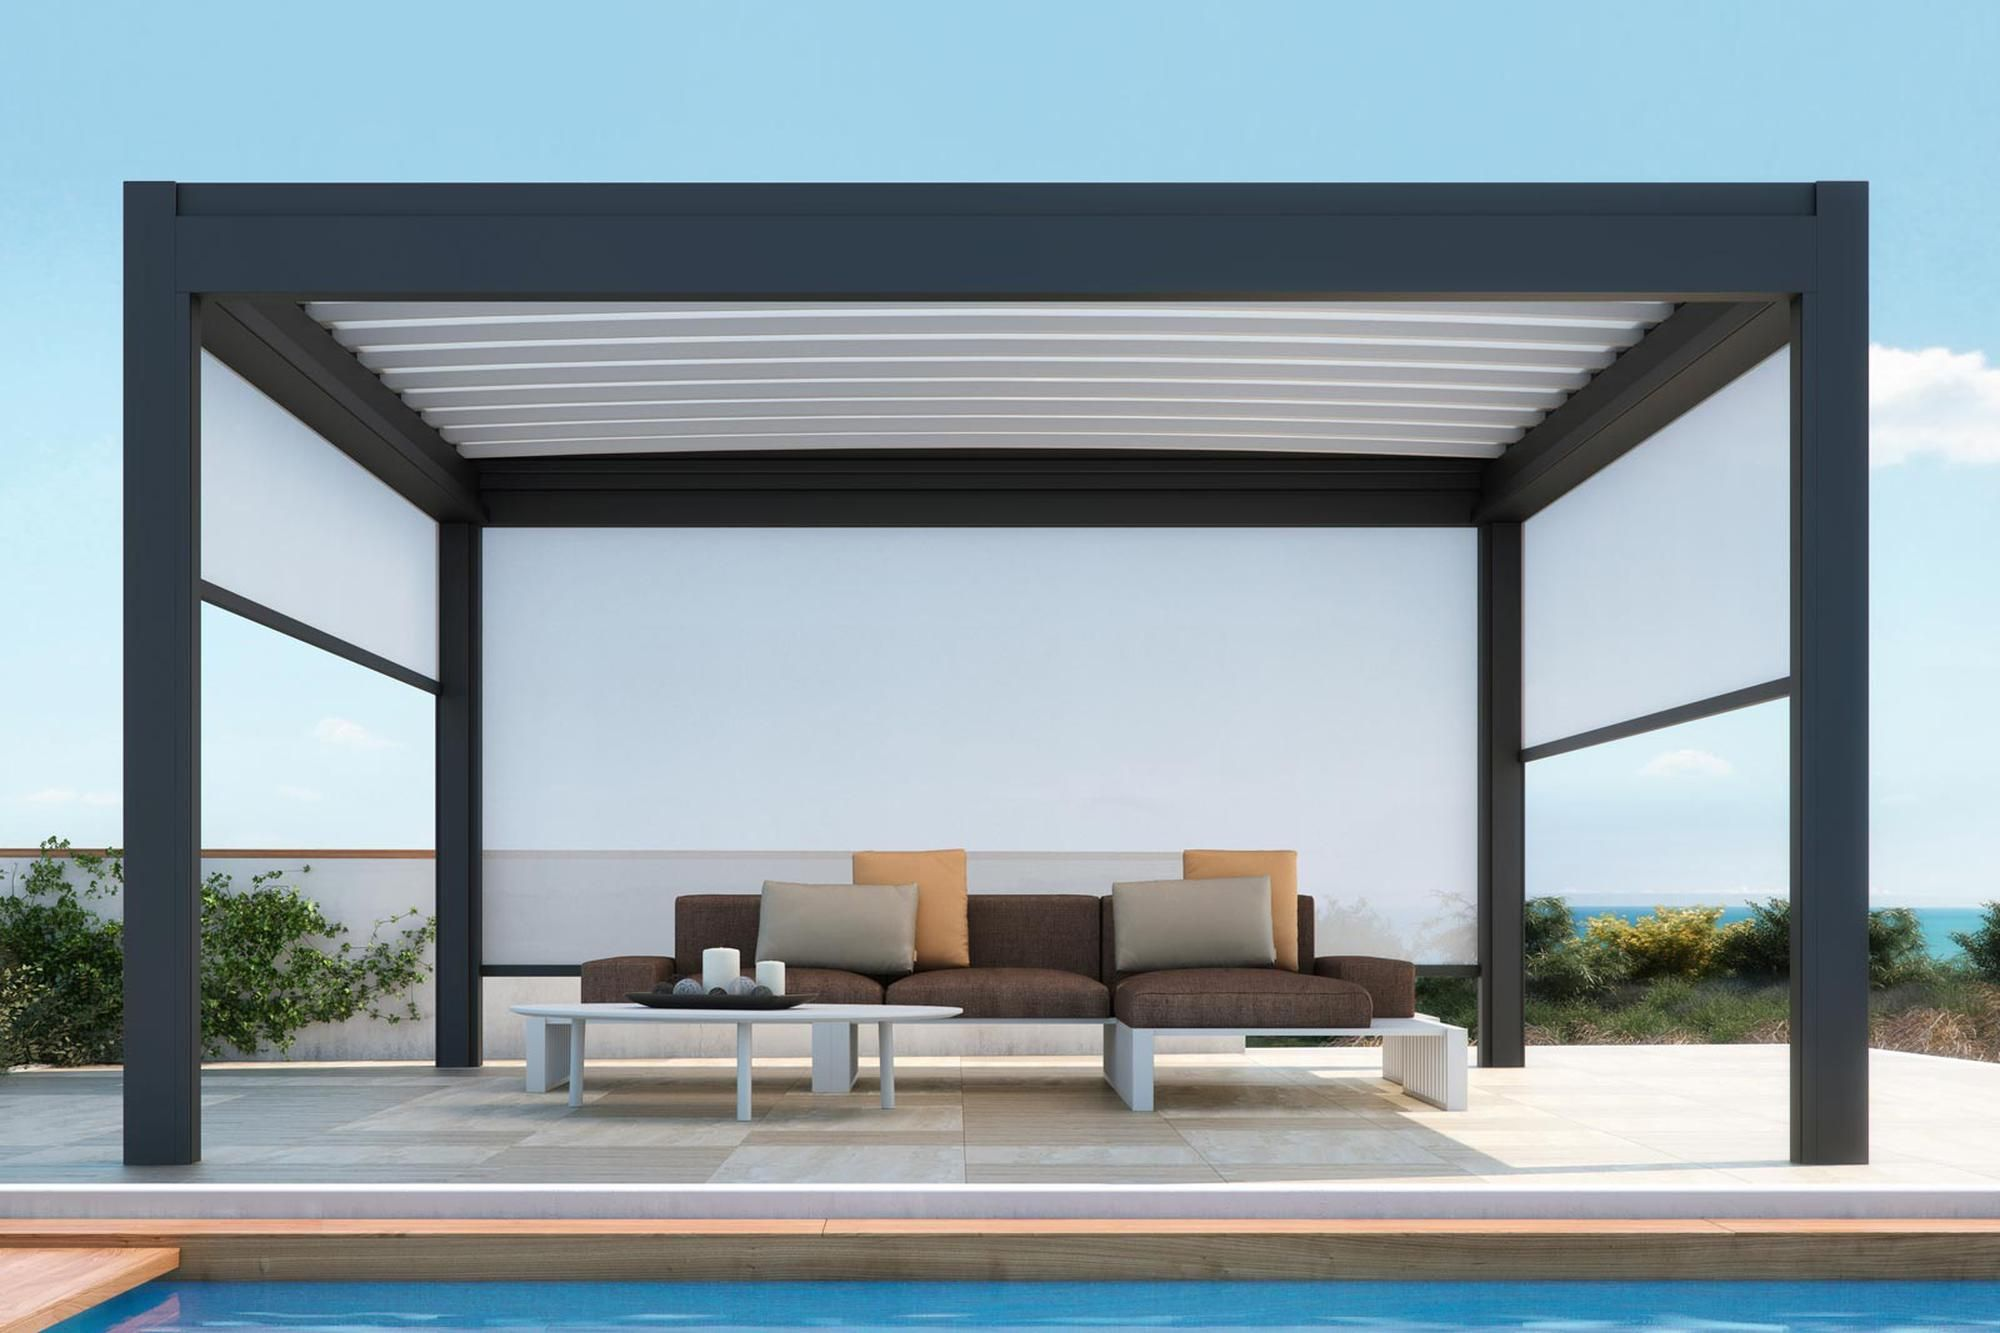 Retractable Residential Patio Deck Attached Pergola Cover System Pergola Pergola Dach Pergola Design